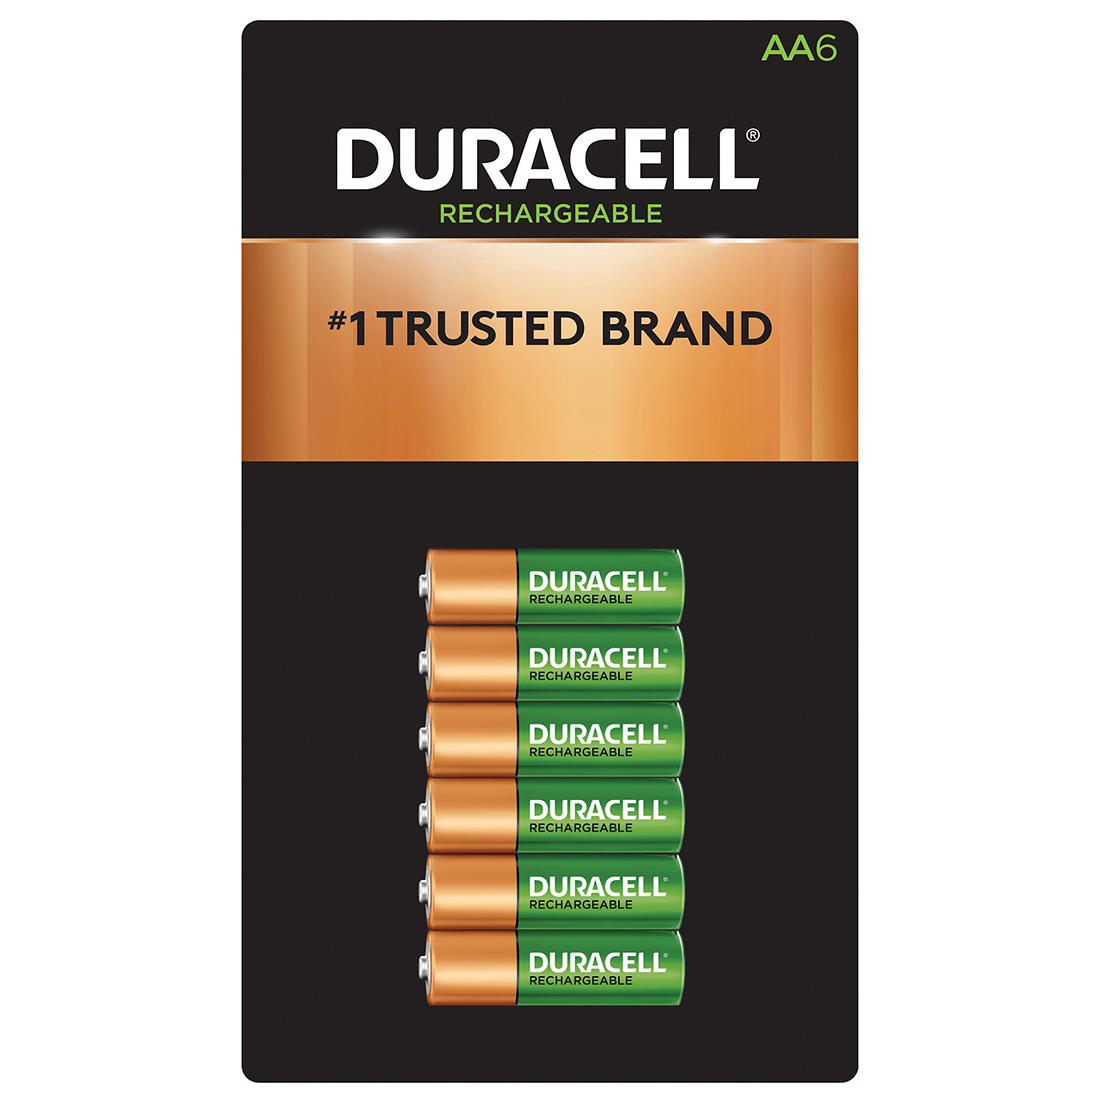 graphic relating to Duracell Battery Coupons Printable named Duracell Rechargeable AA Pre-Billed Batteries, 6 ct.